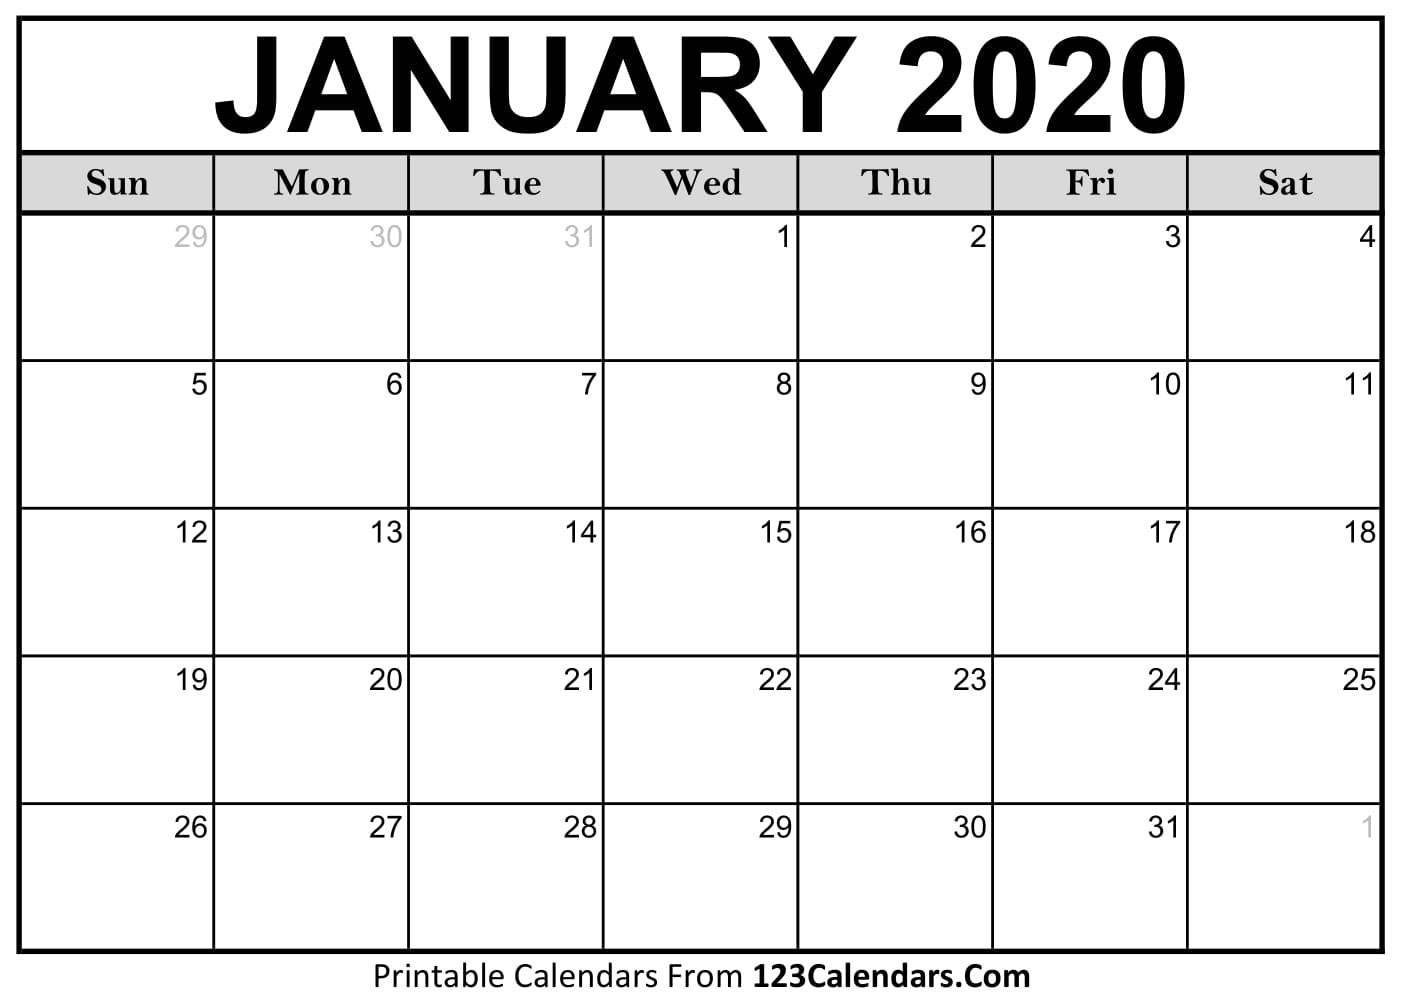 January 2020 Printable Calendar | 123Calendars – Example in January 2020 Calendar 123Calendars